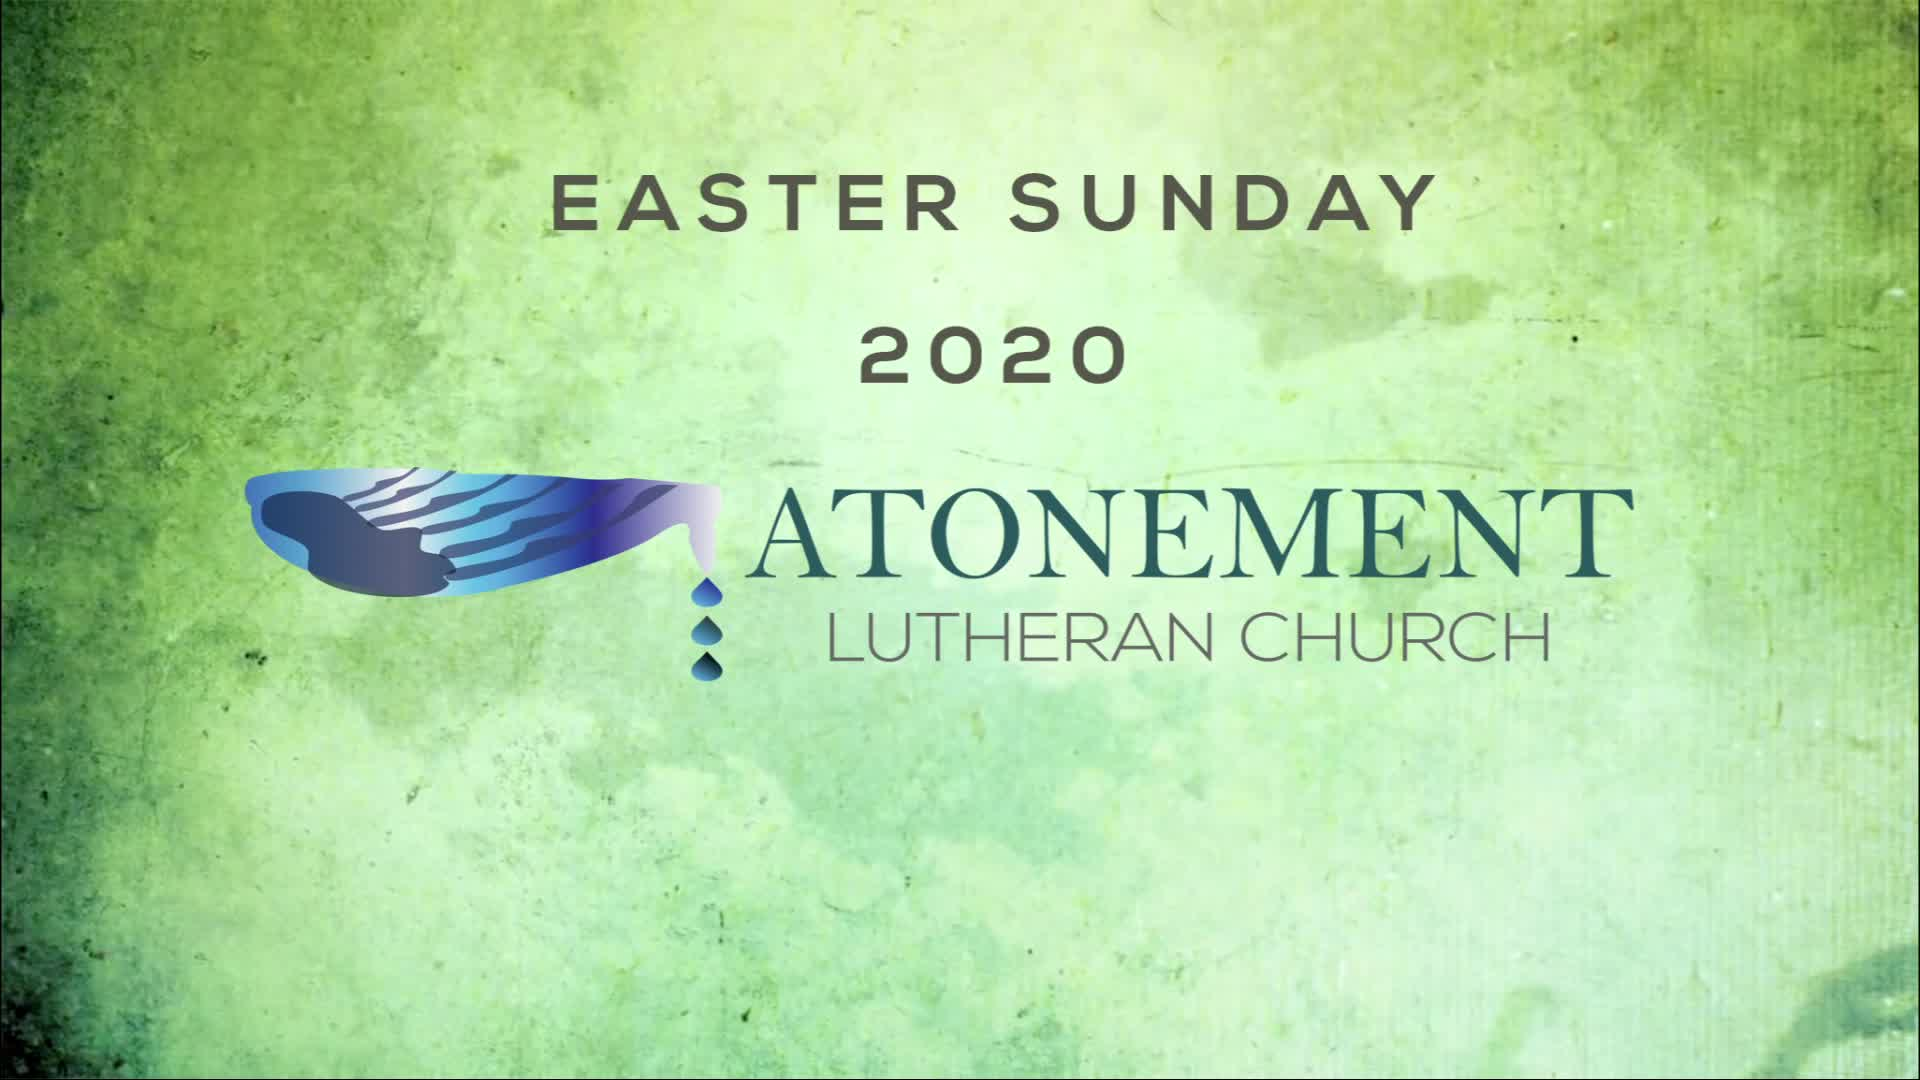 Easter Sunday 2020